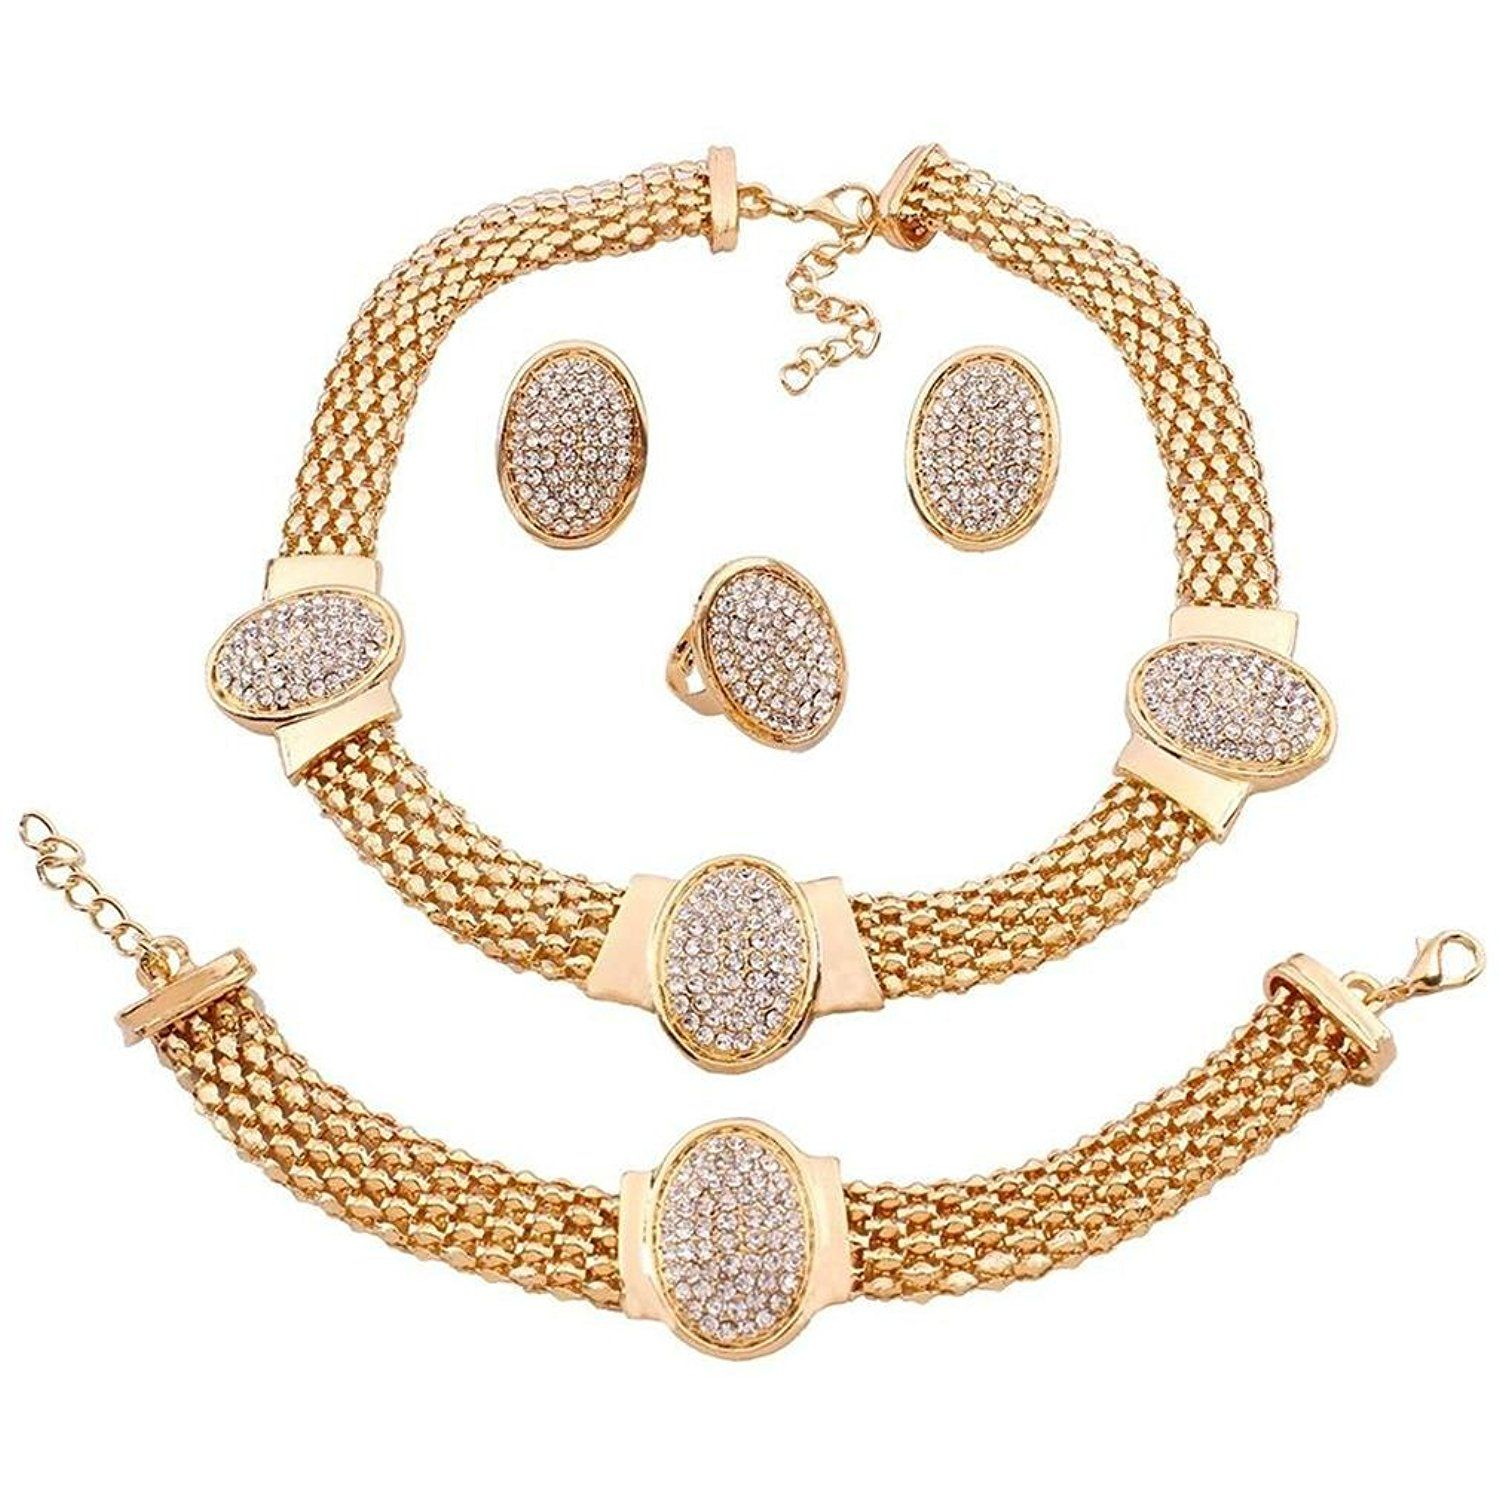 Hfjandyieandh european and american fashion jewelry sets necklace